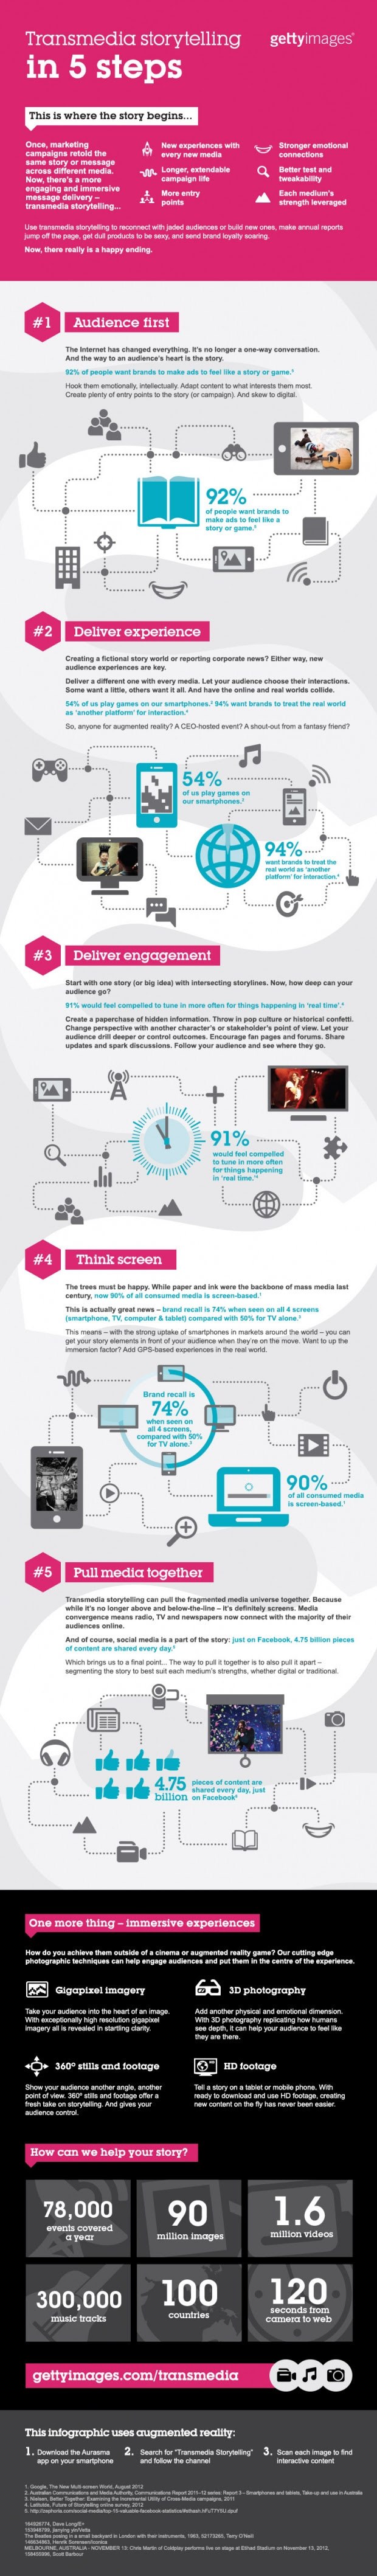 transmedia-infographic